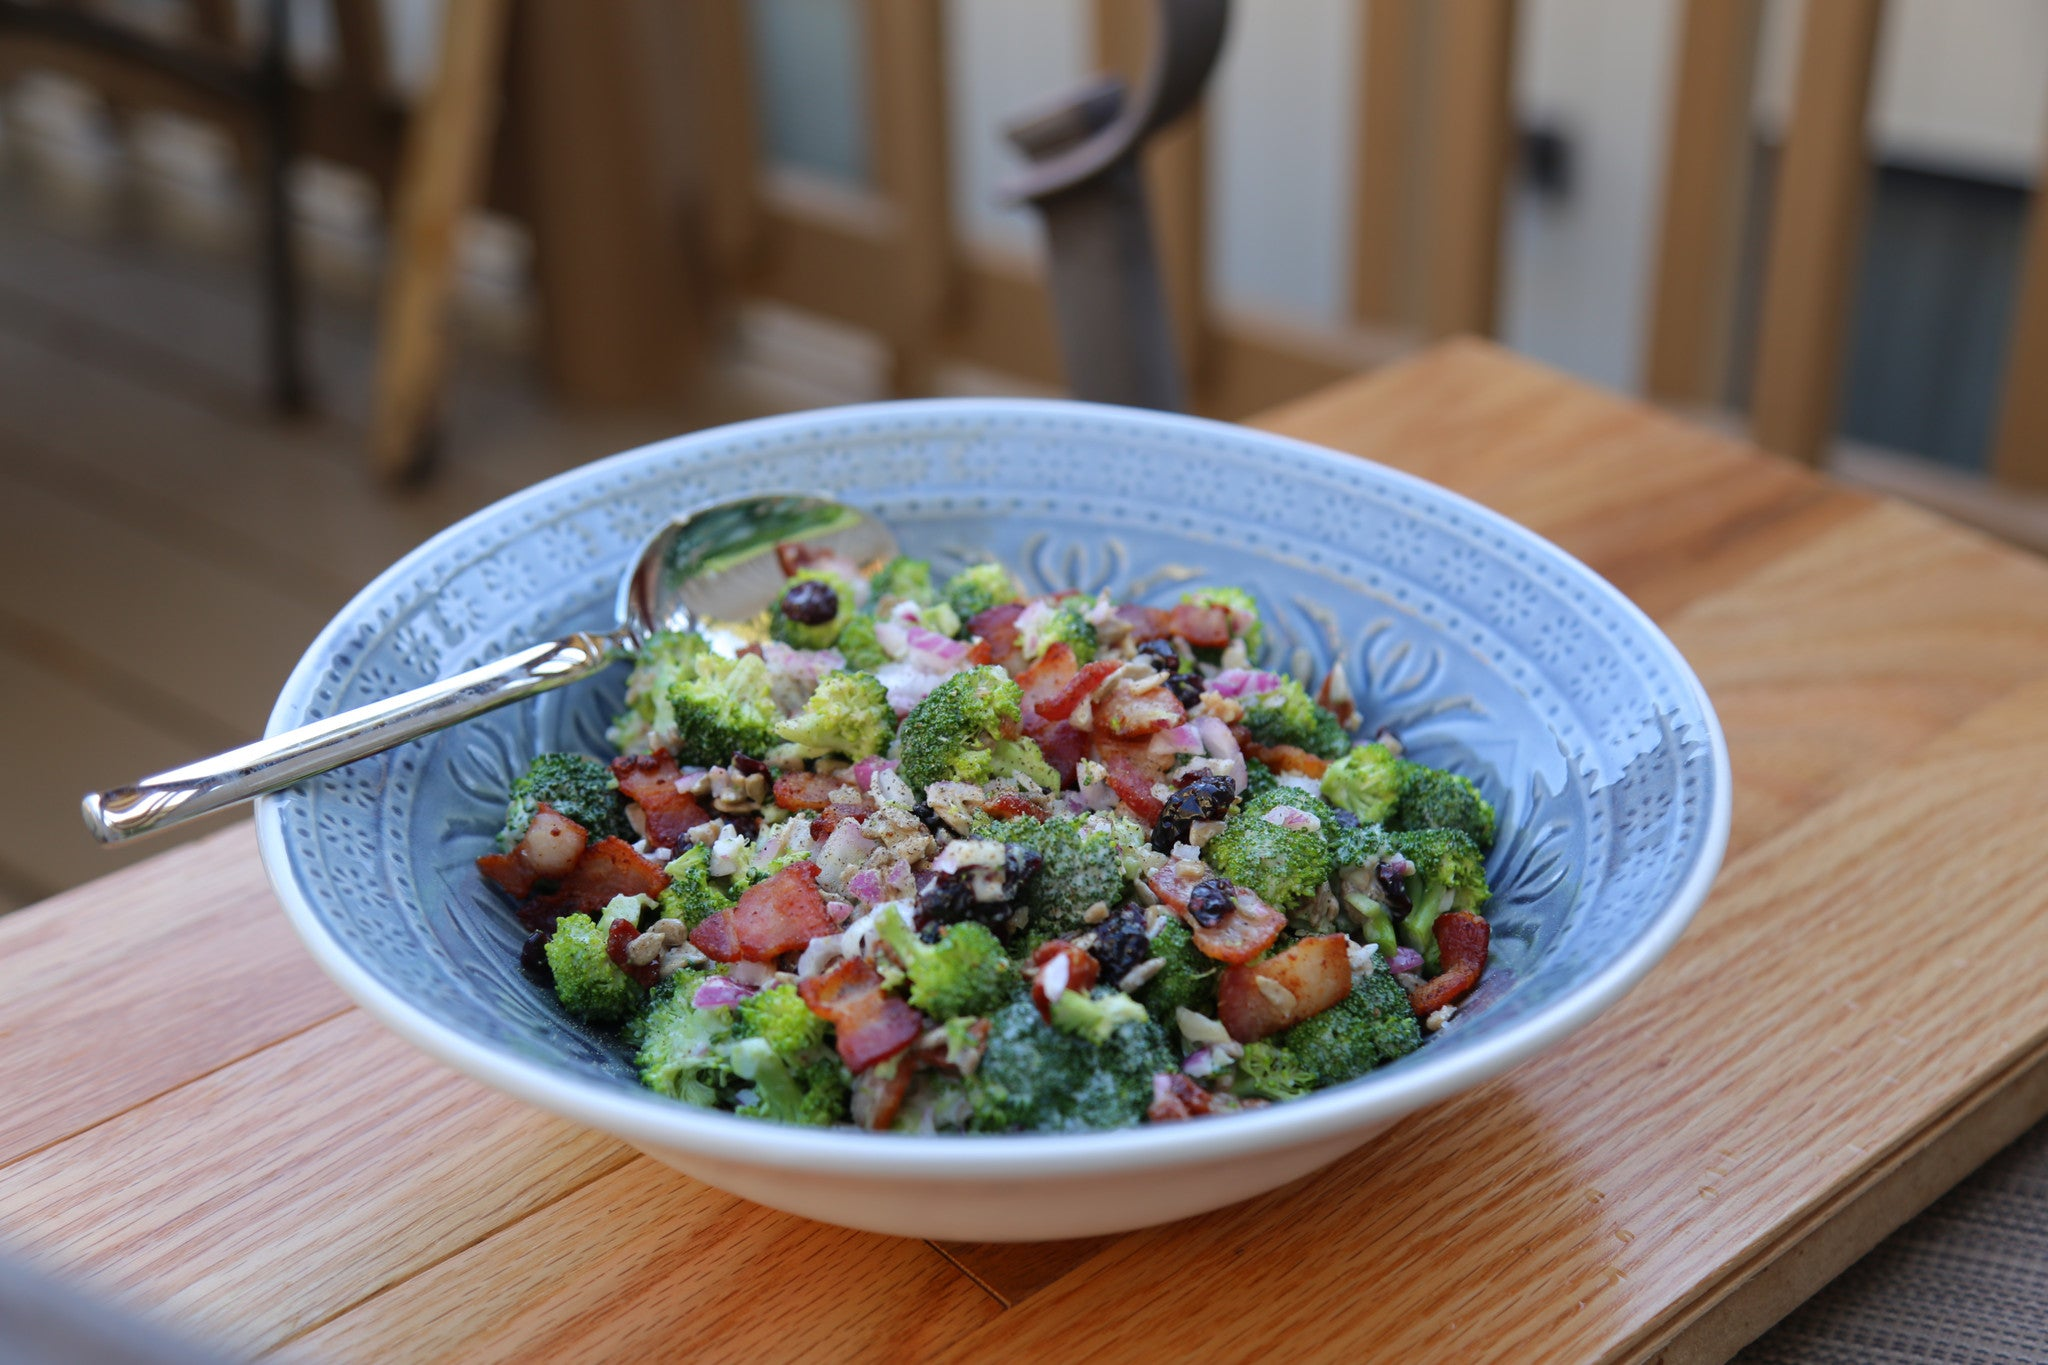 Bacon and Broccoli Paleo Salad